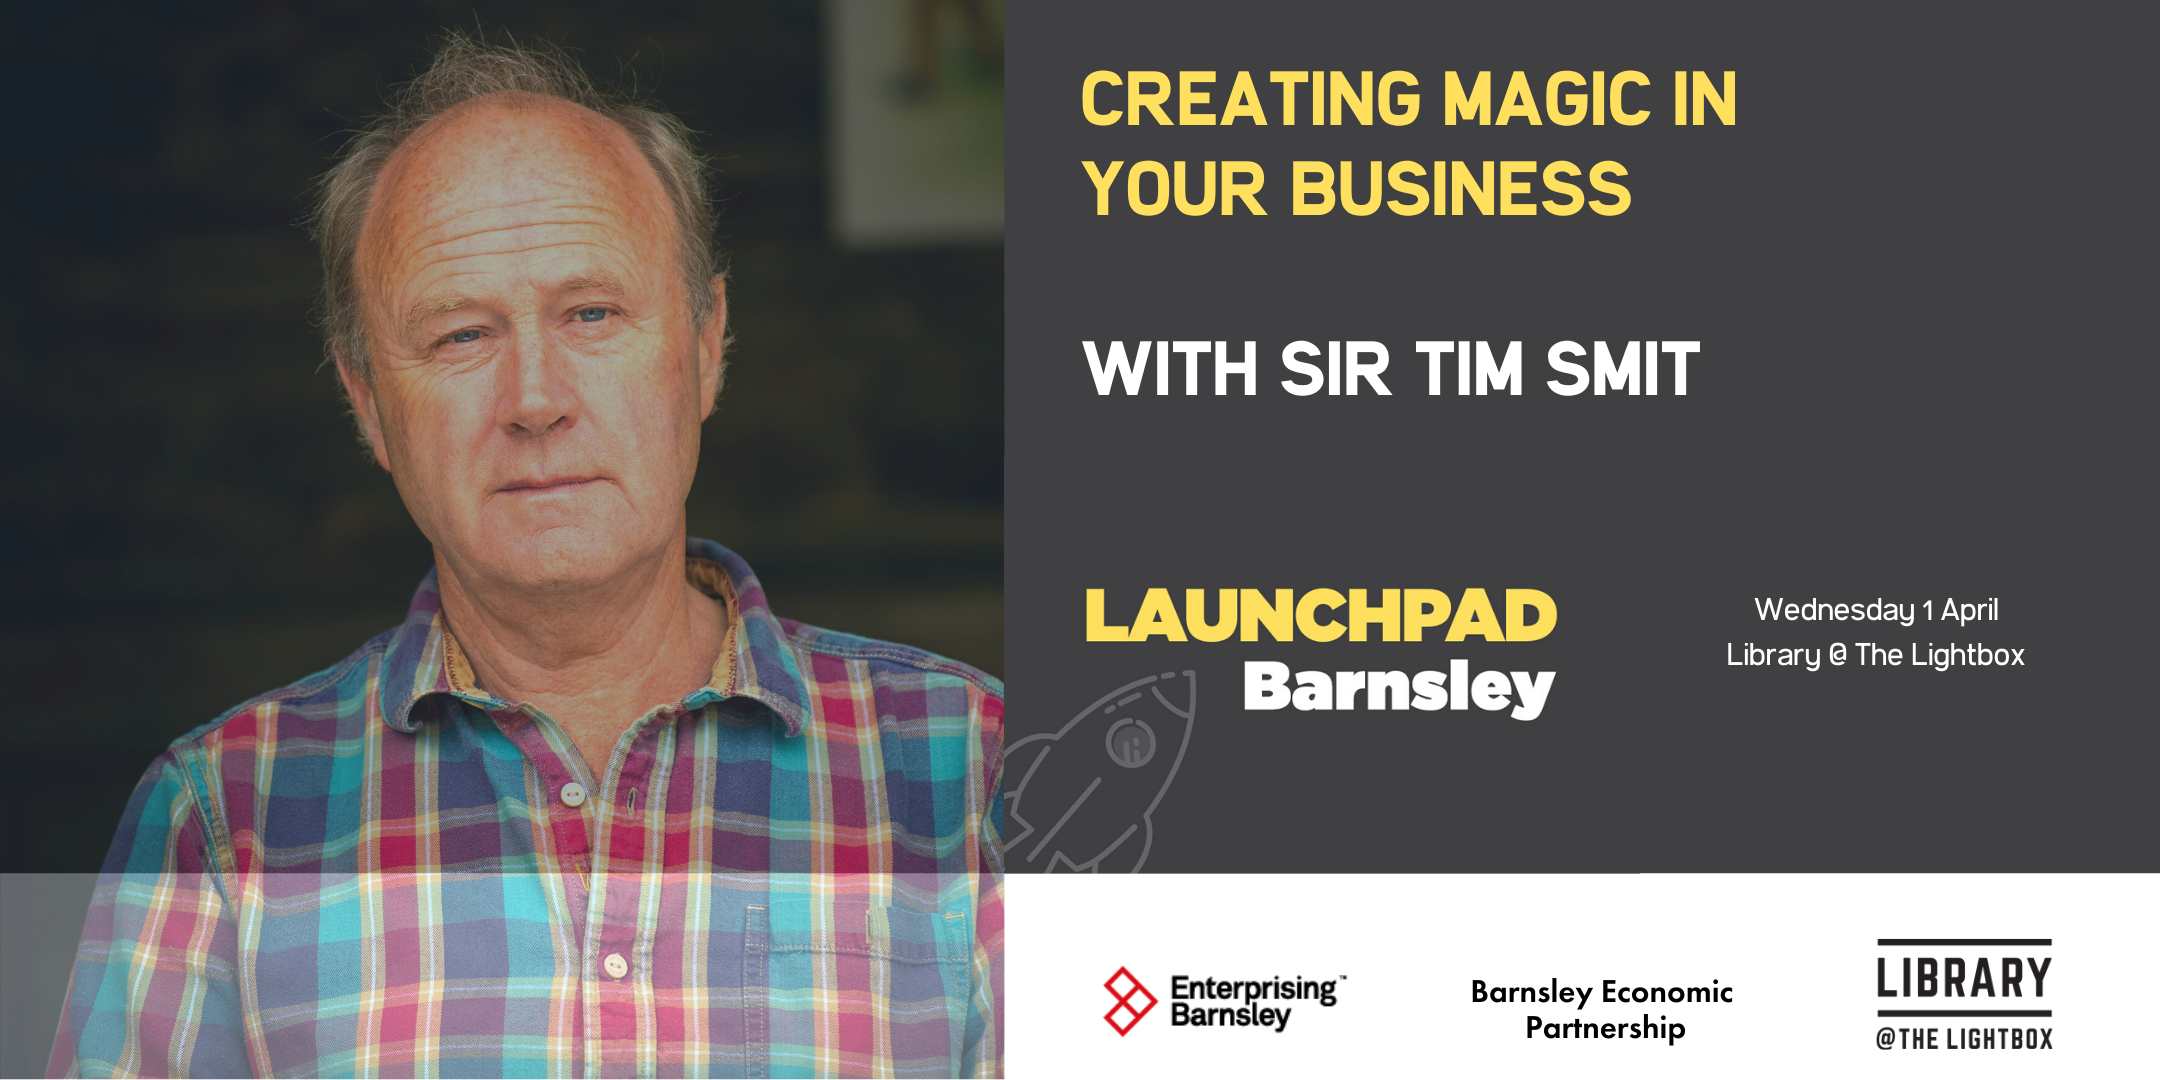 Creating magic in your business. With Sir Tim Smit